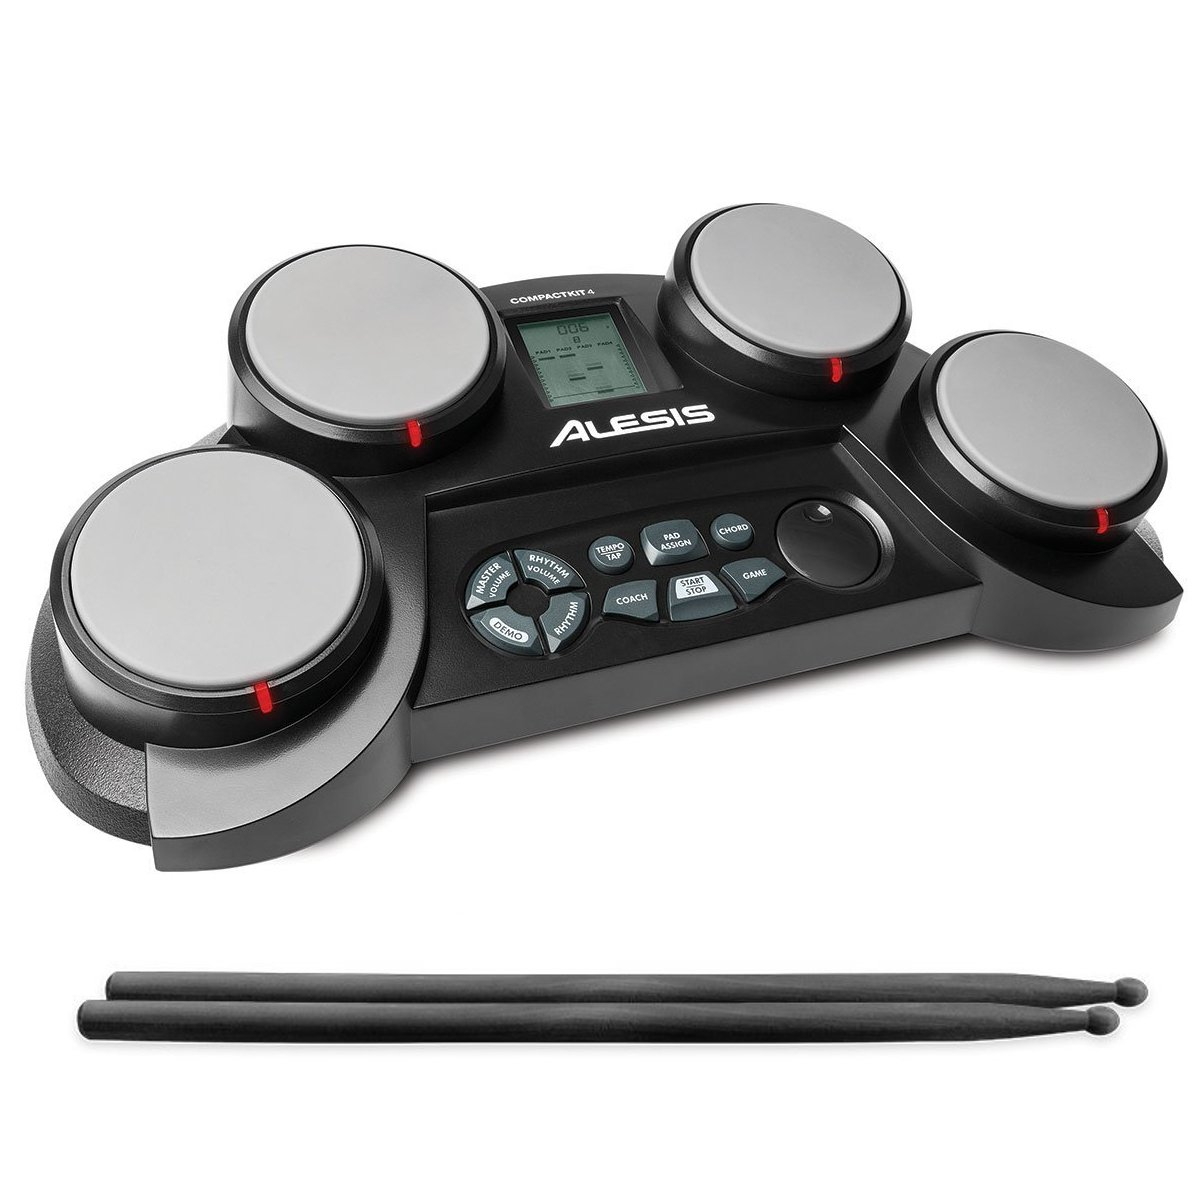 Alesis Compact Kit 4 | Portable 4-Pad Tabletop Electronic Drum Kit with Velocity-Sensitive Drum Pads, 70 Drum Sounds, Coaching Feature, Game Functions, Battery- or AC-Power and Drum Sticks Included by Alesis